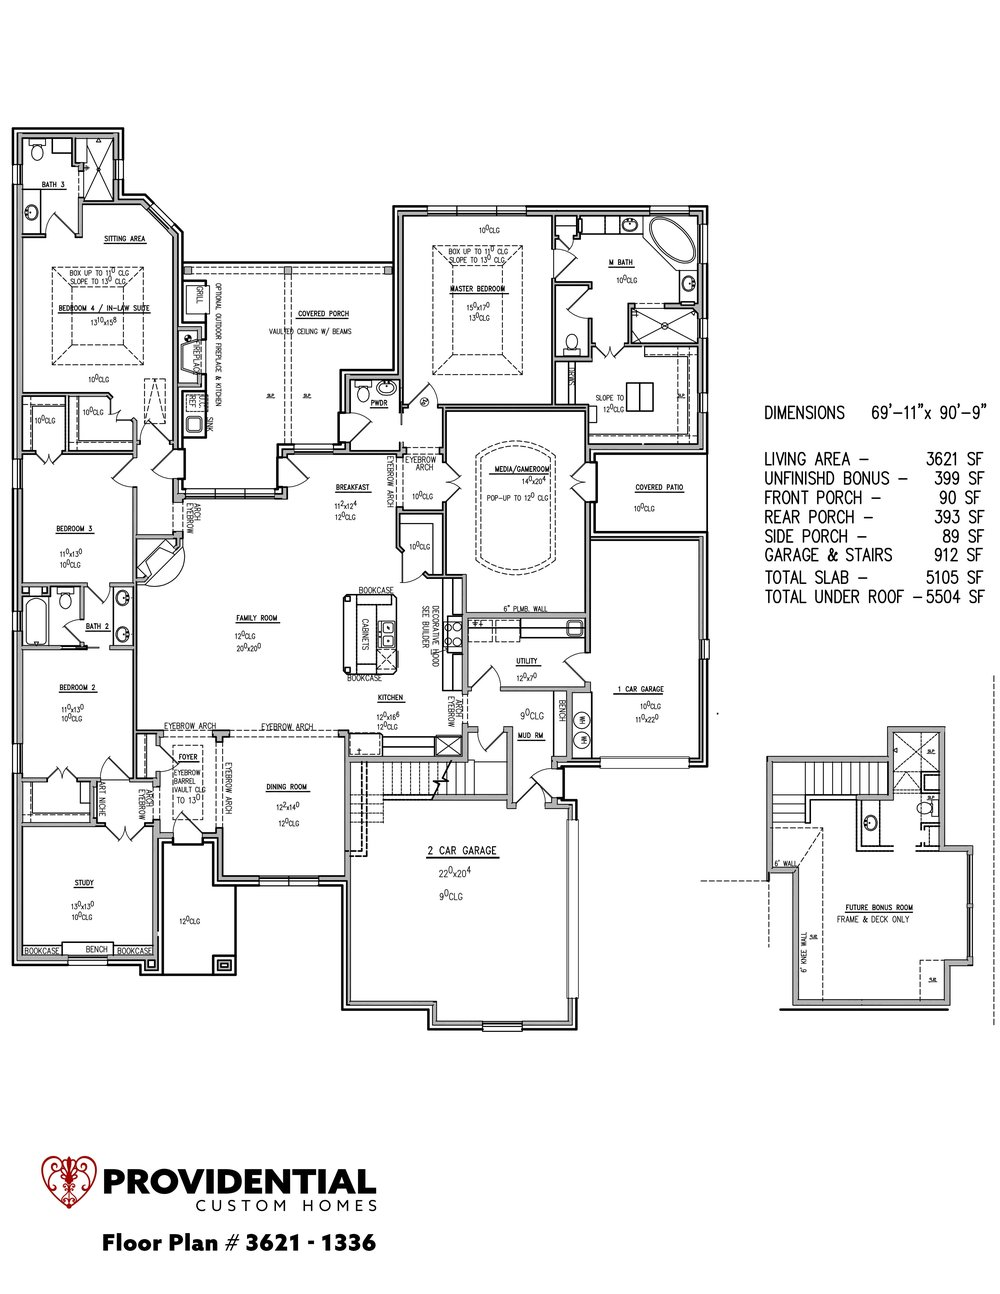 The FLOOR PLAN #3621 - 1336.jpg